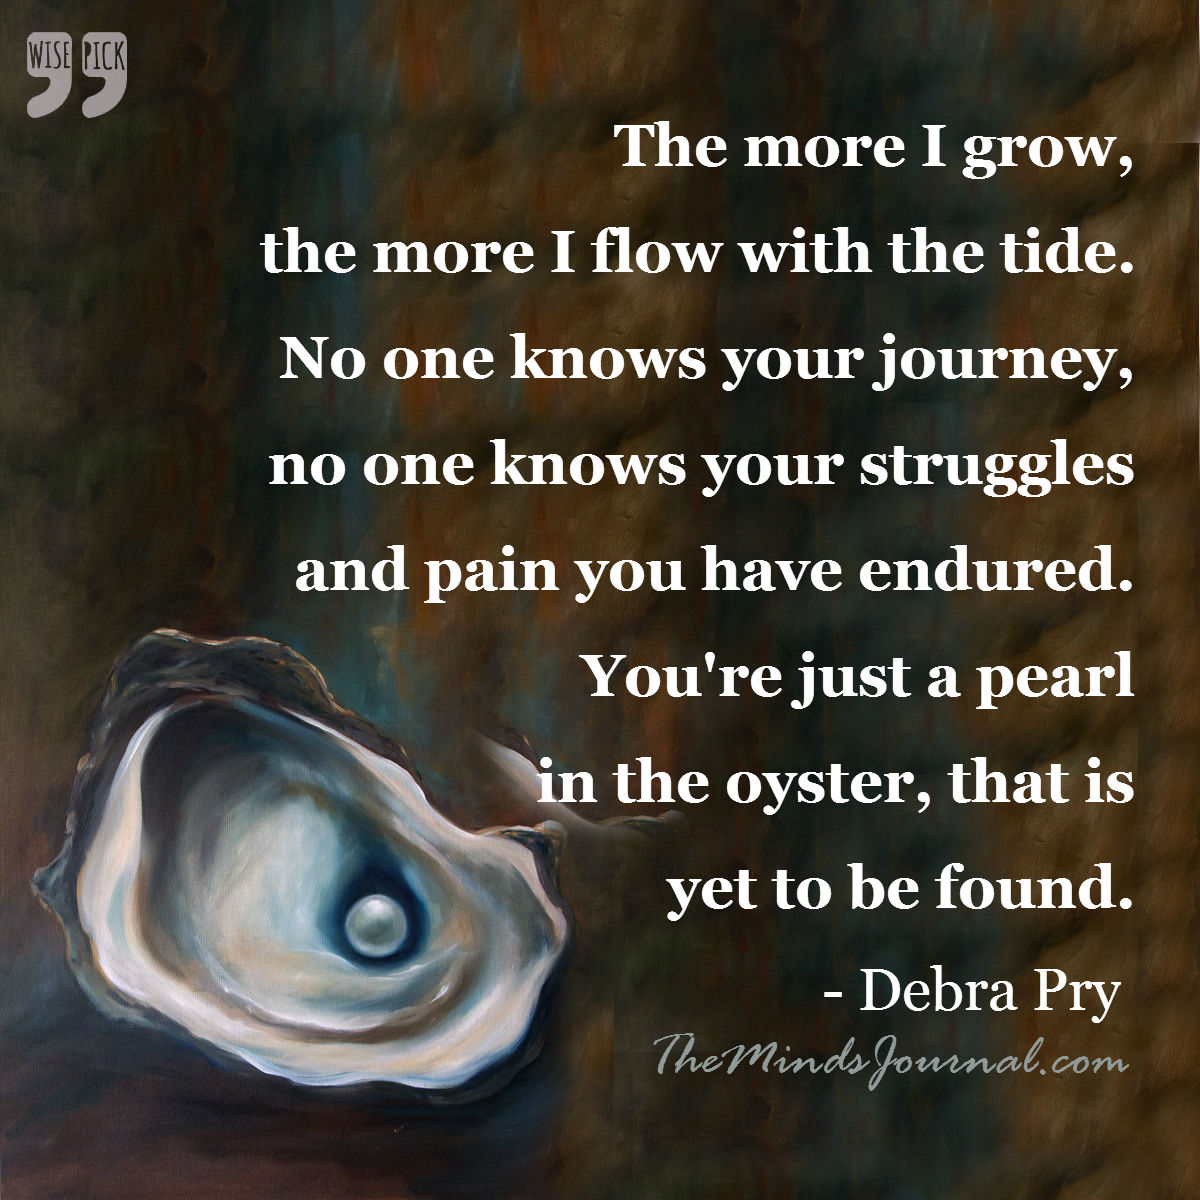 You are just a pearl in the oyster